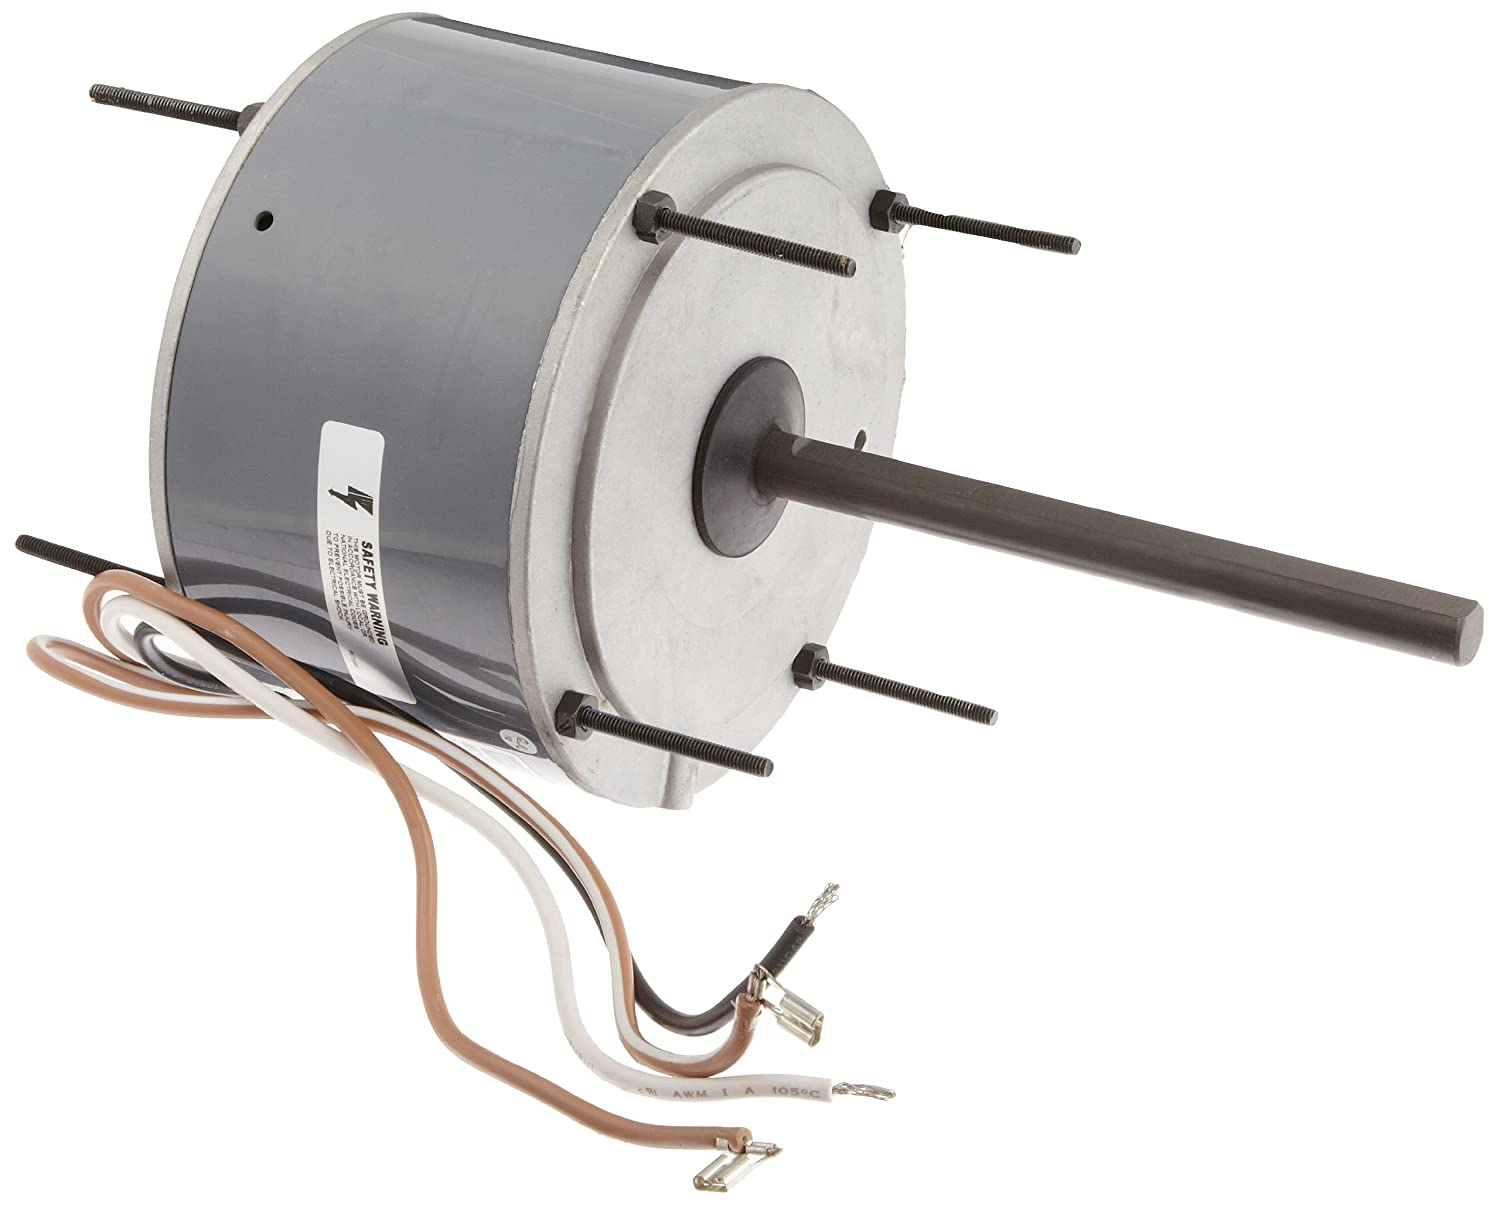 208-230 Volts Reversible Rotation 1075 RPM Totally Enclosed Sleeve Bearing Fasco D919 5.6-Inch Condenser Fan Motor 1//8 HP 1 Speed.9 Amps